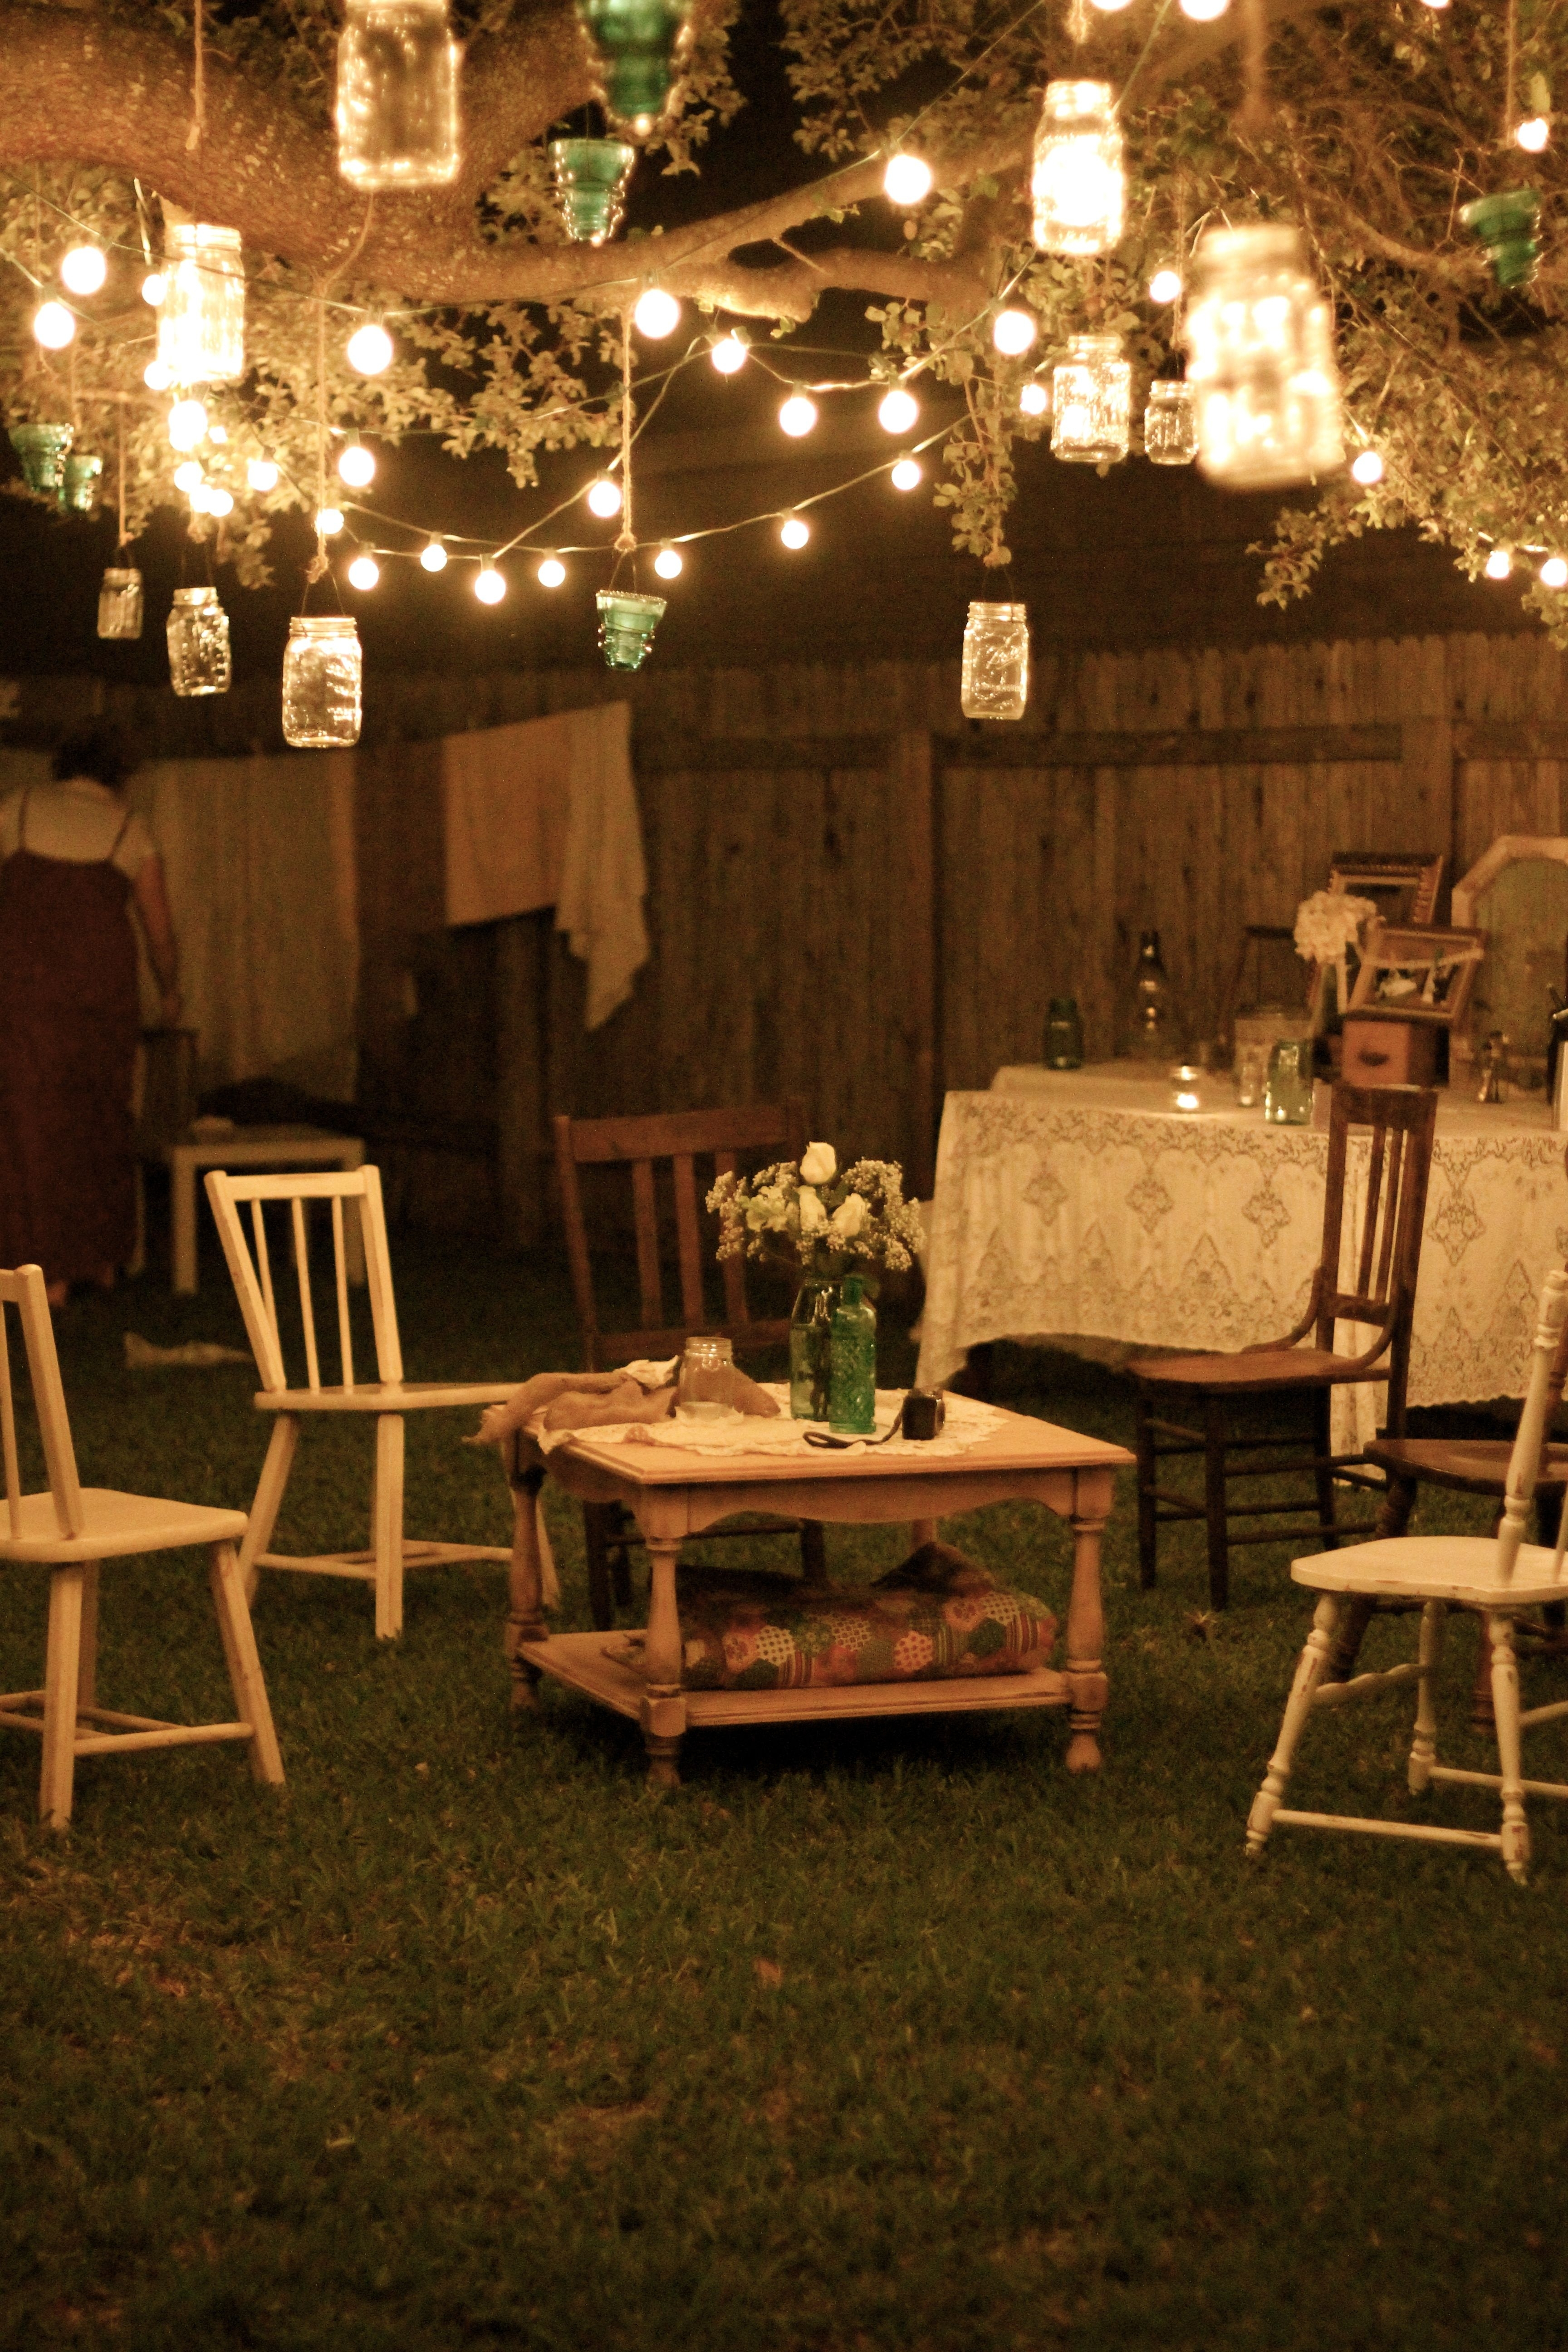 Garden Party At Night; Lanterns Hang From Tree Branches, And Rustic With Regard To Outdoor Hanging Party Lanterns (View 3 of 15)